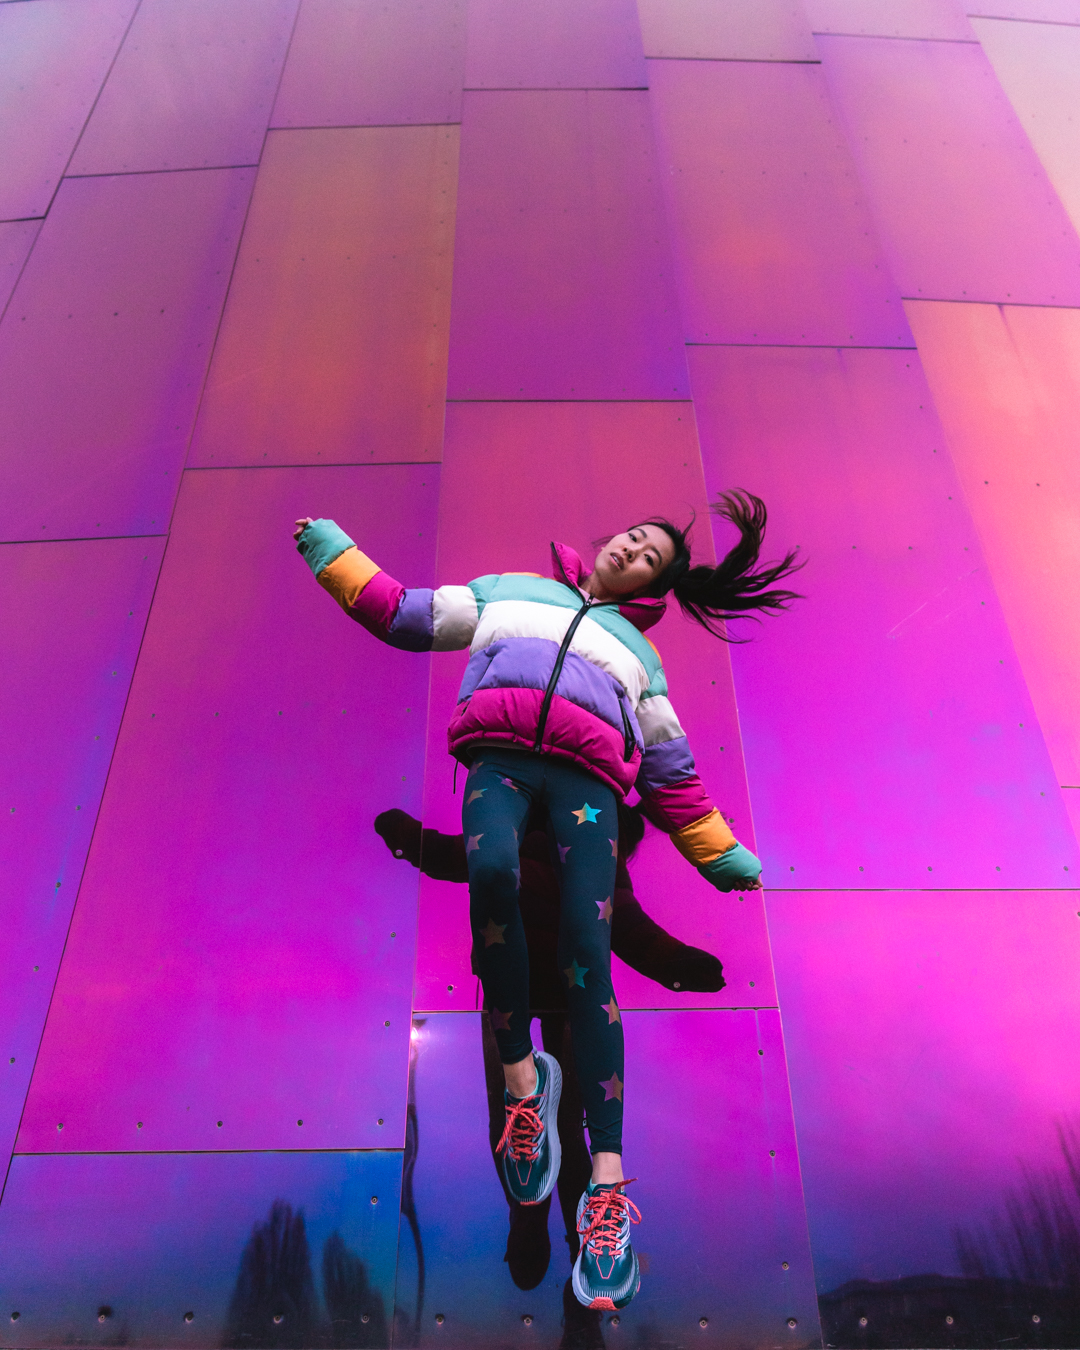 Girl jumping up in front of colorful pink wall